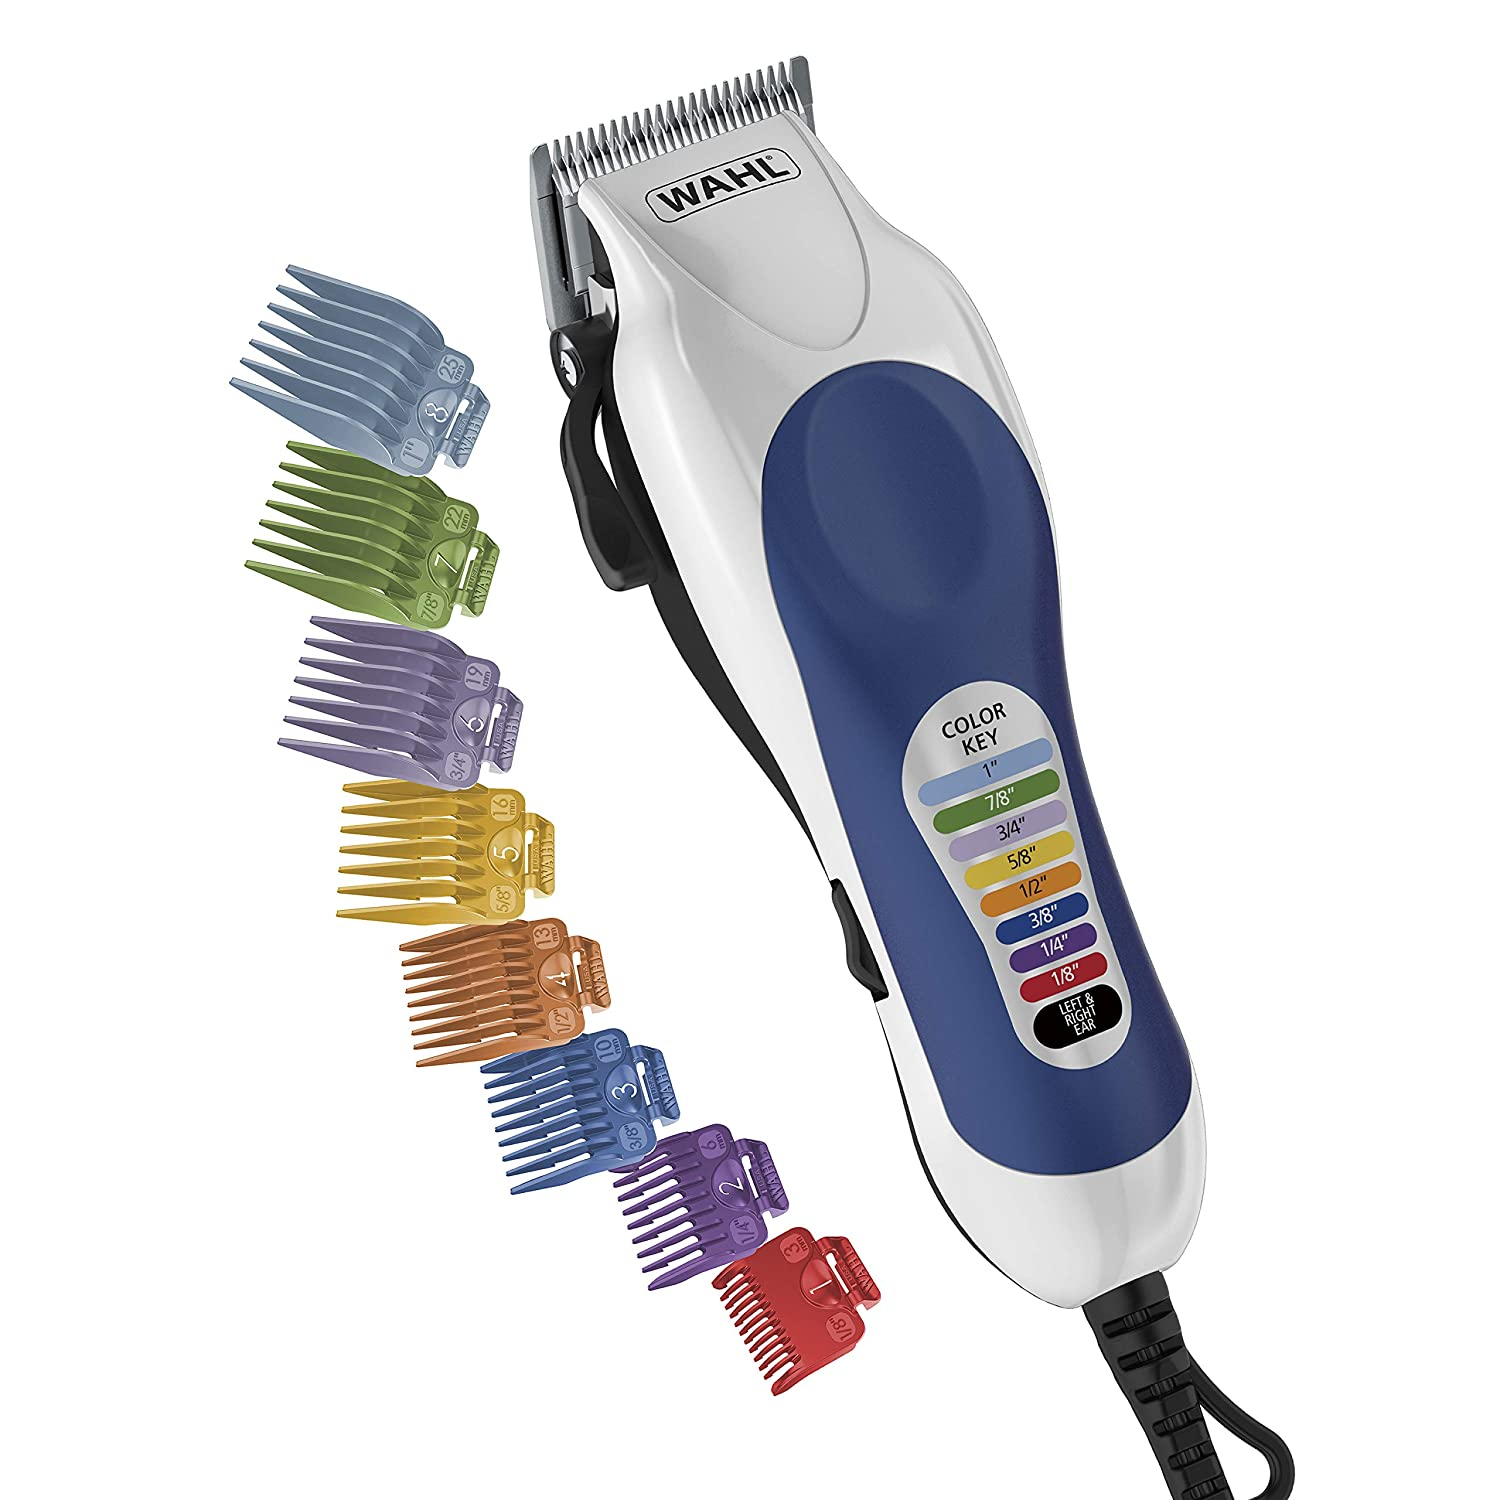 Wahl Color Pro Complete Hair Cutting Kit, #79300-400T : Hair Clipper Kits And Sets : Beauty